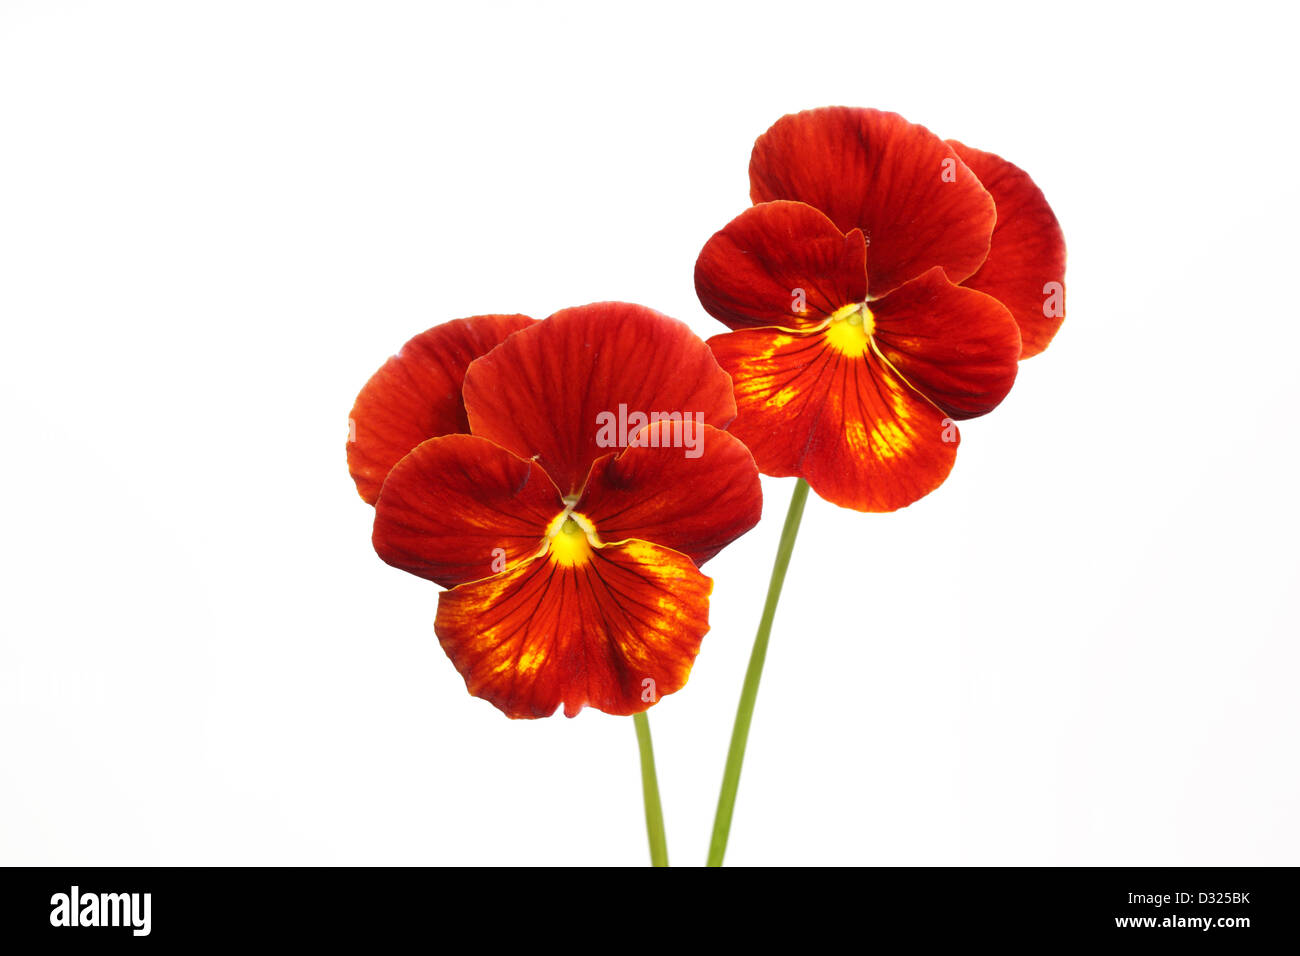 Two pansy flowers isolated on white background - Stock Image